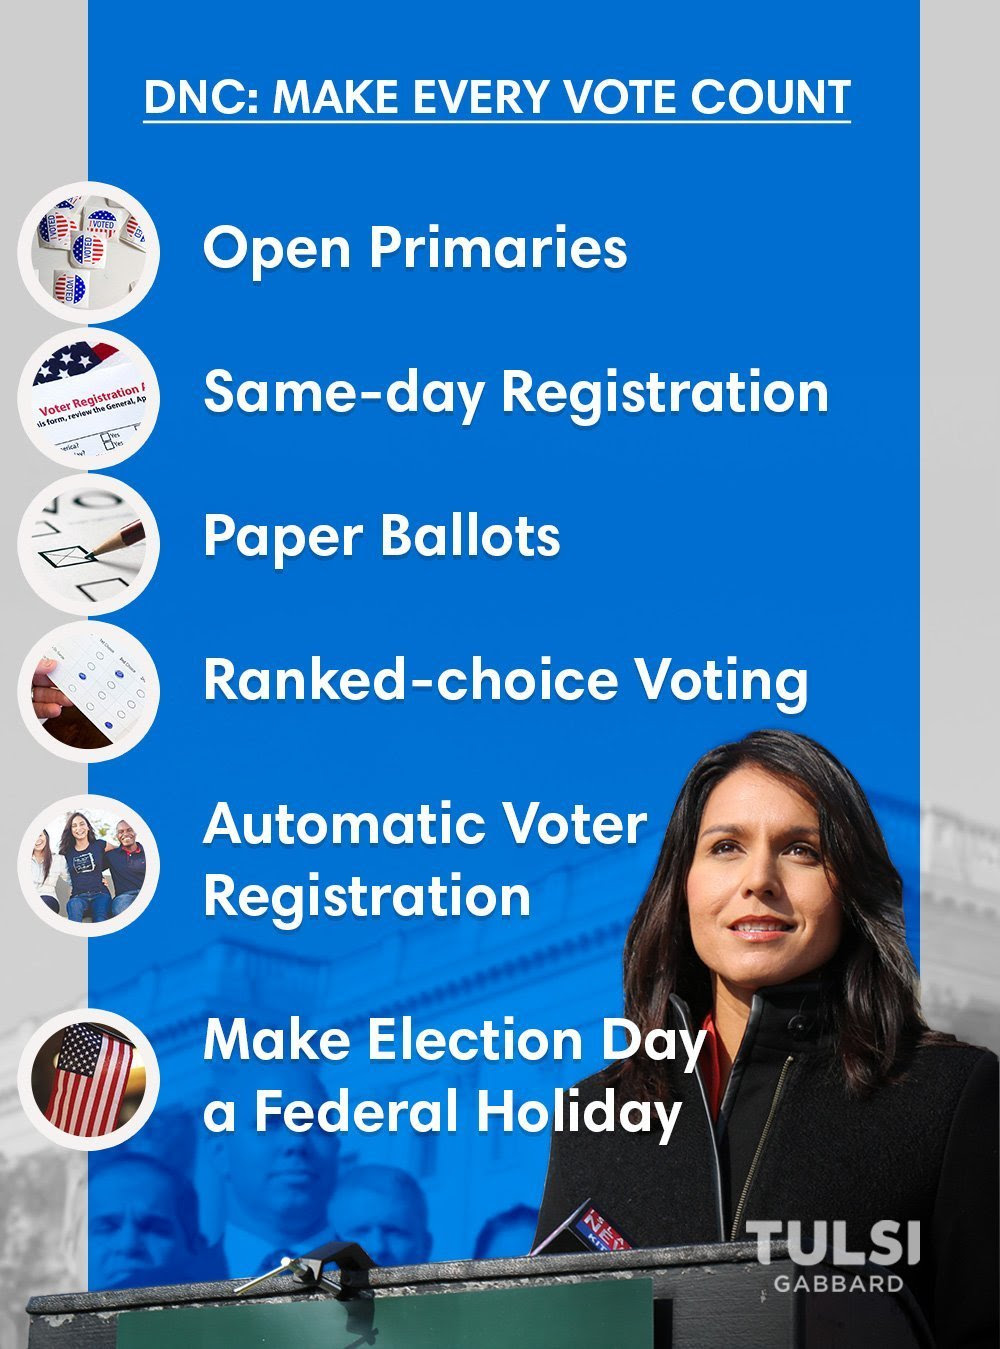 DNC: Make Every Vote Count Graphic